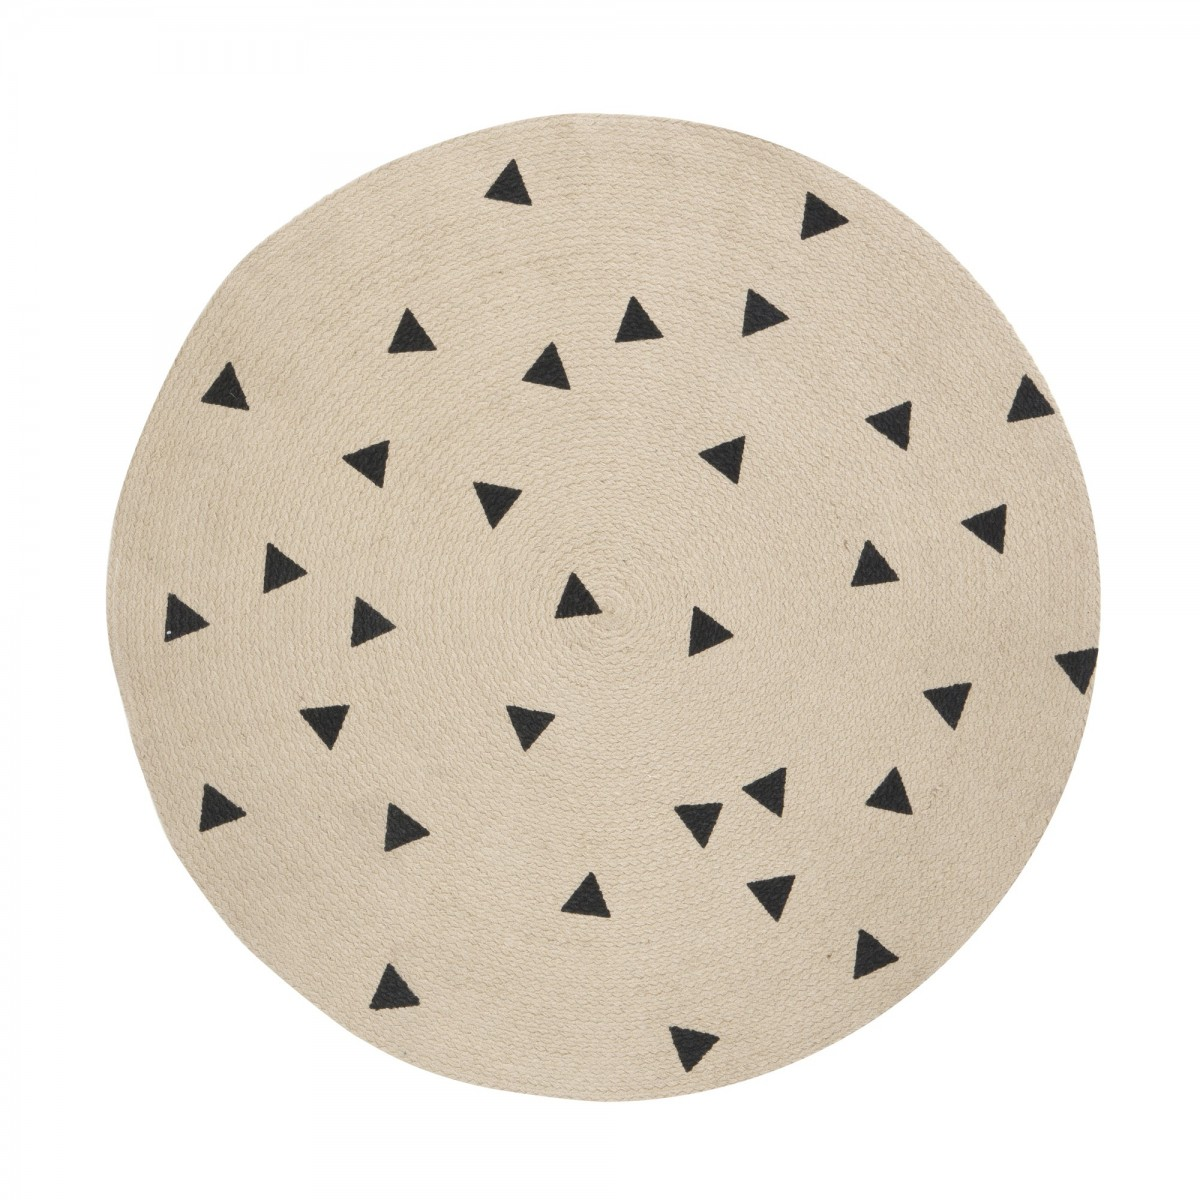 tapis rond triangles noir 100 coton organique ferm living. Black Bedroom Furniture Sets. Home Design Ideas